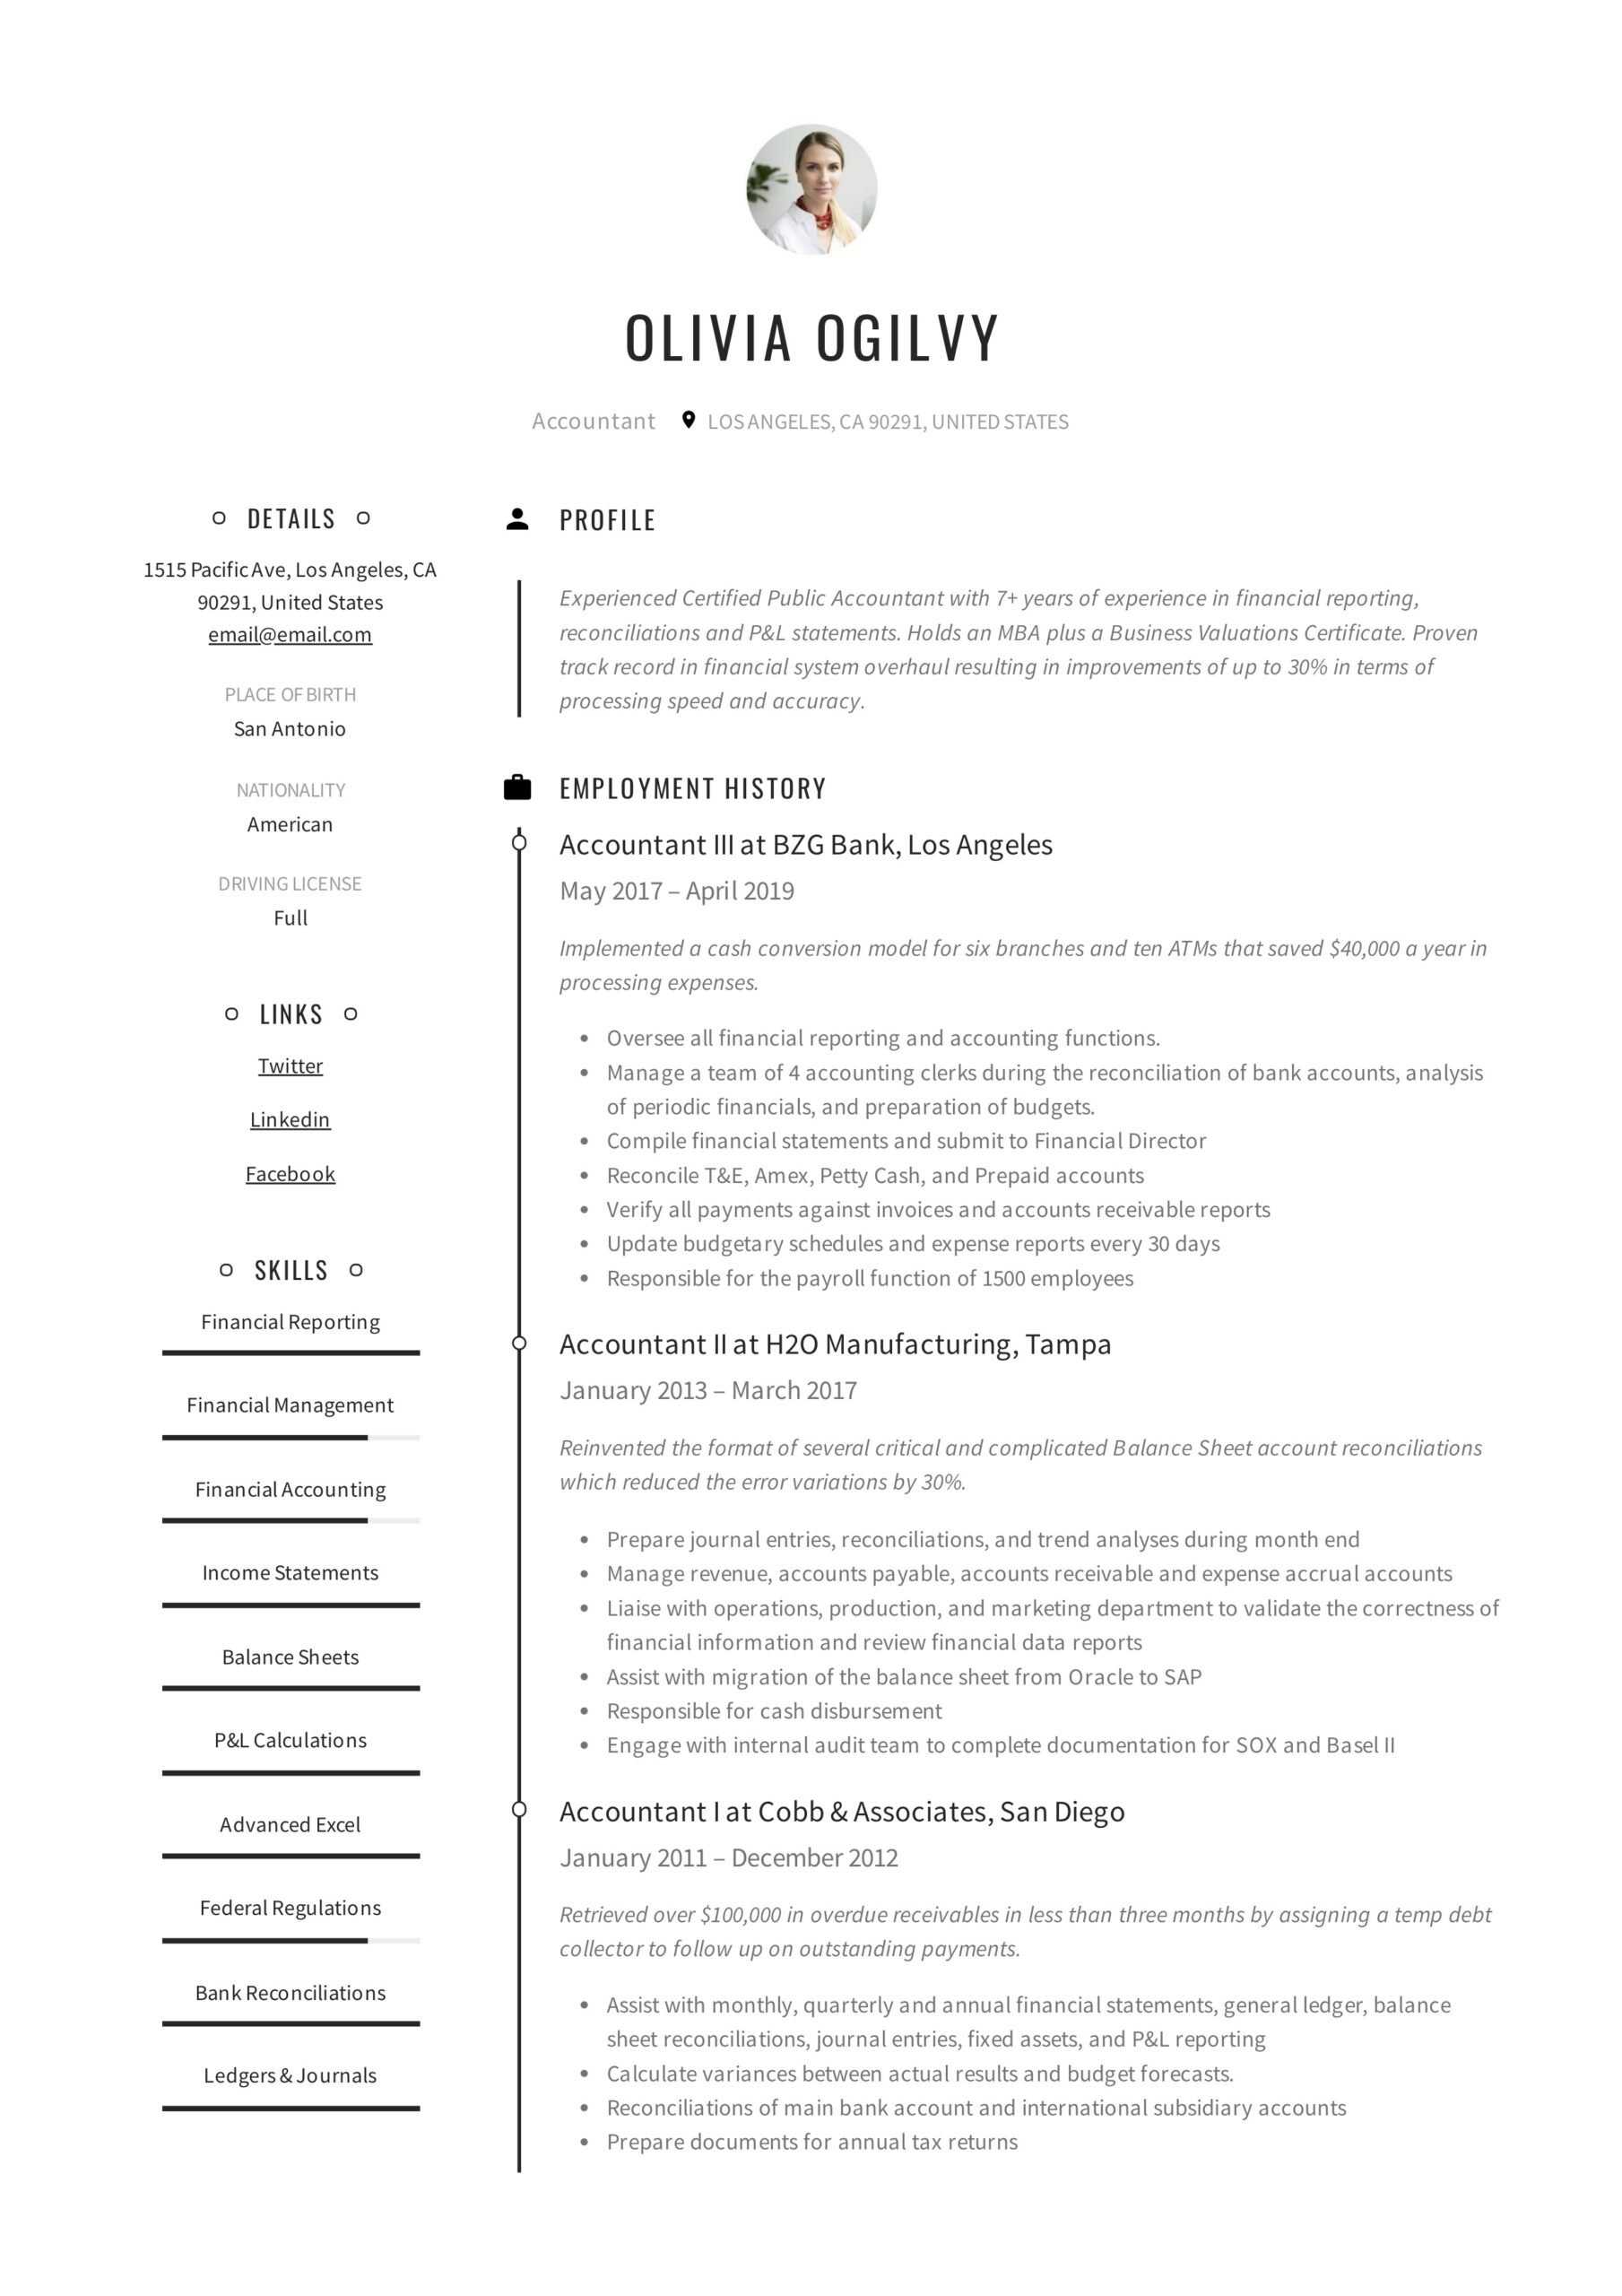 accountant resume writing guide templates pdf outsource experience olivia ogilvy examples Resume Resume Outsource Experience